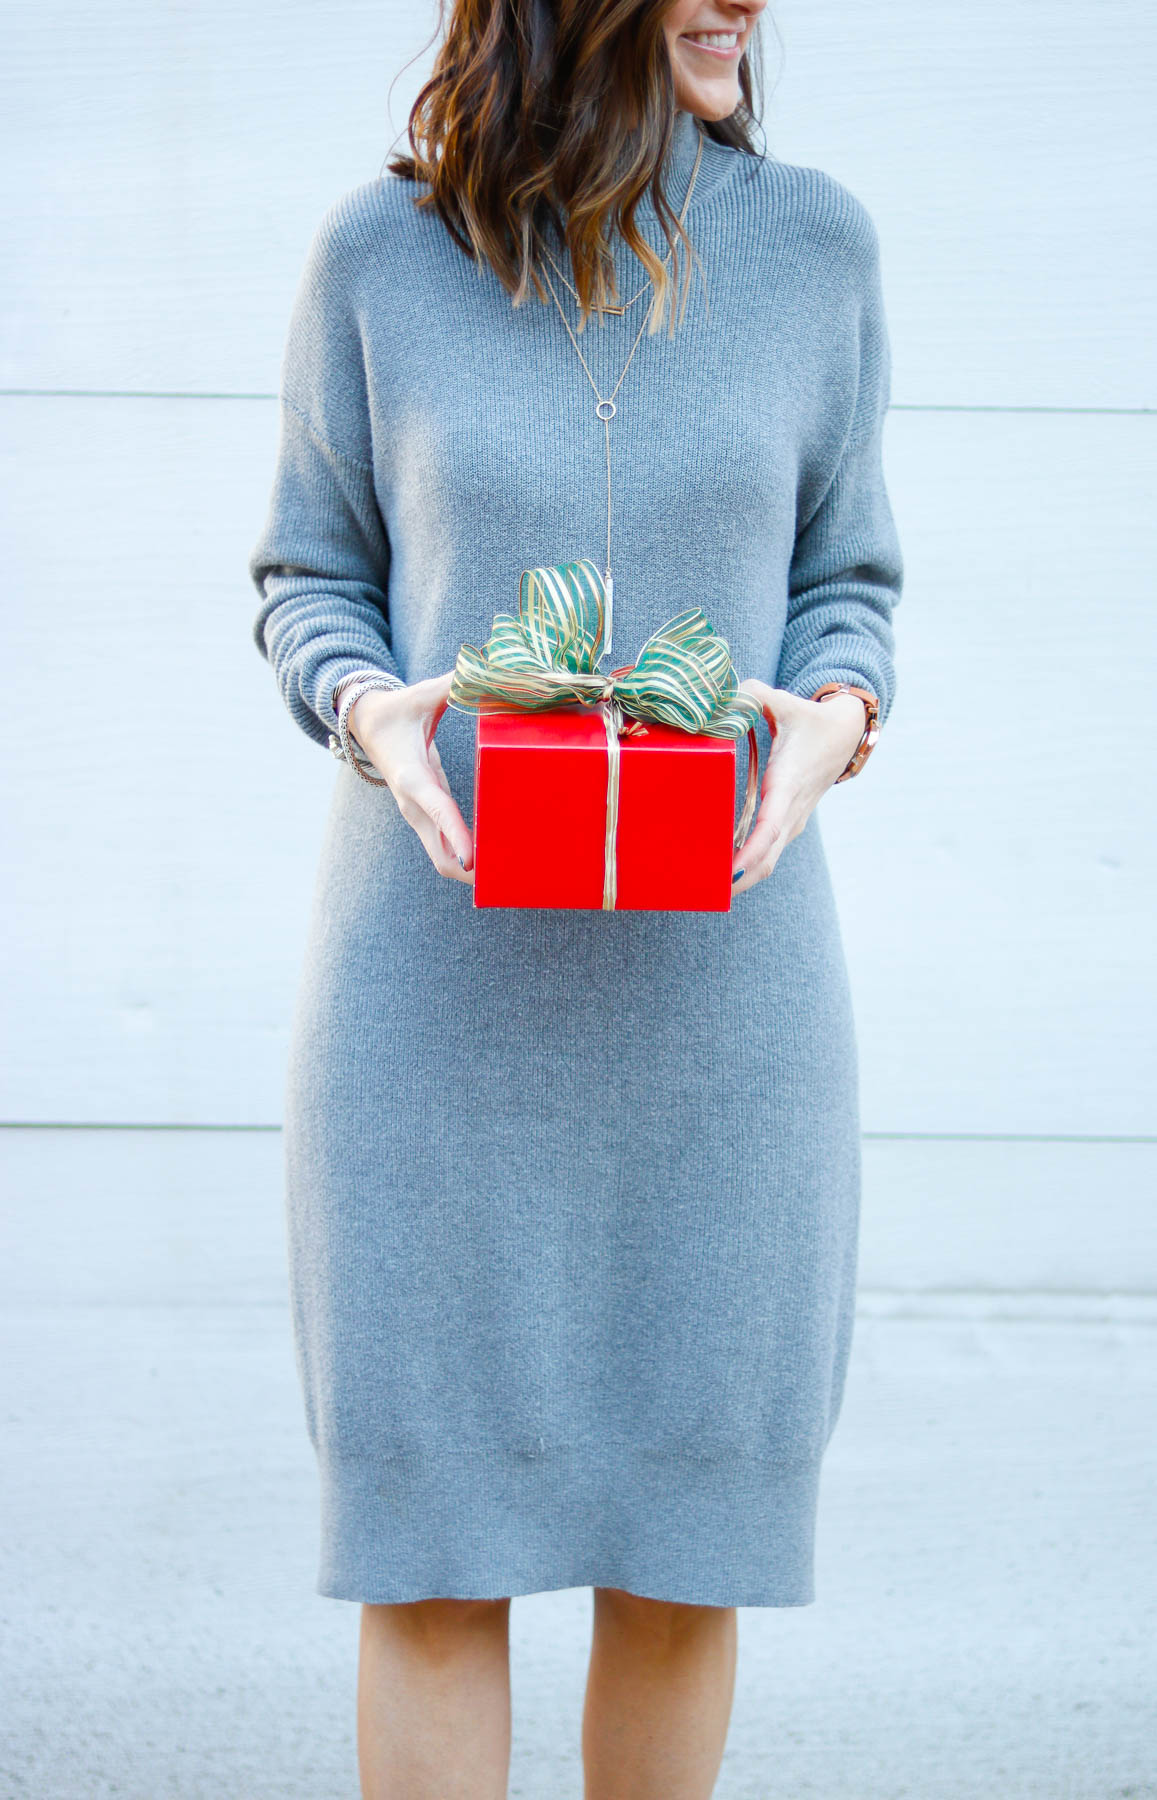 Holiday Outfit Inspiration - Grey Sweater Dress for the Holidays by Washington DC style blogger Cobalt Chronicles